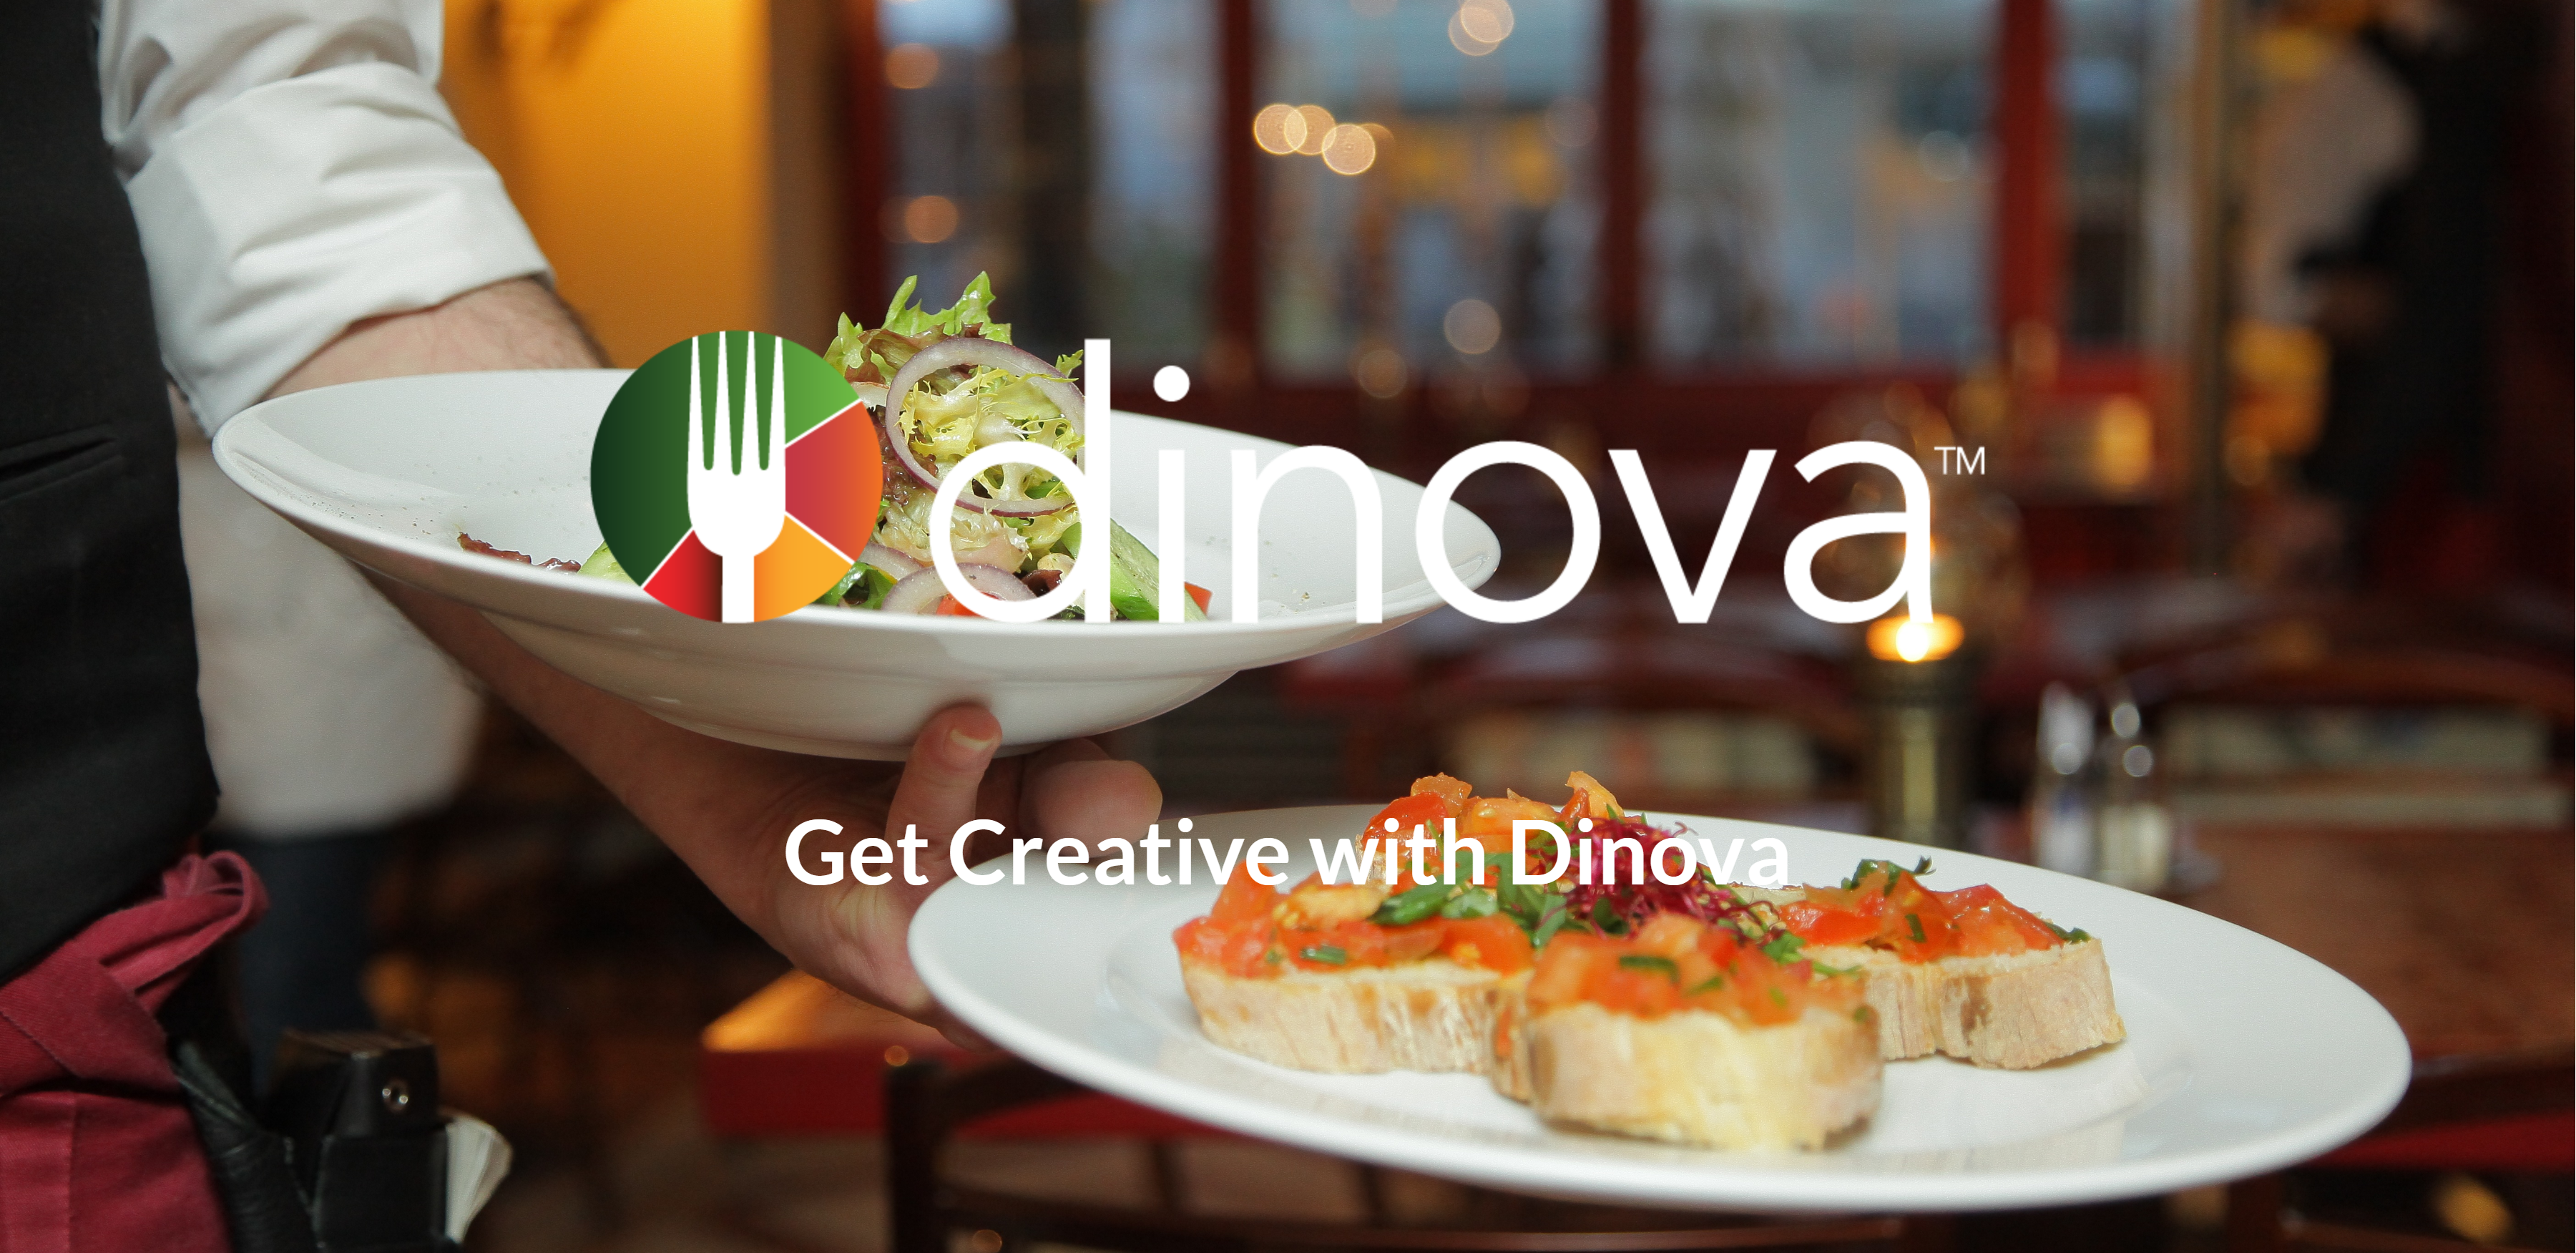 Get Creative with Dinova Image